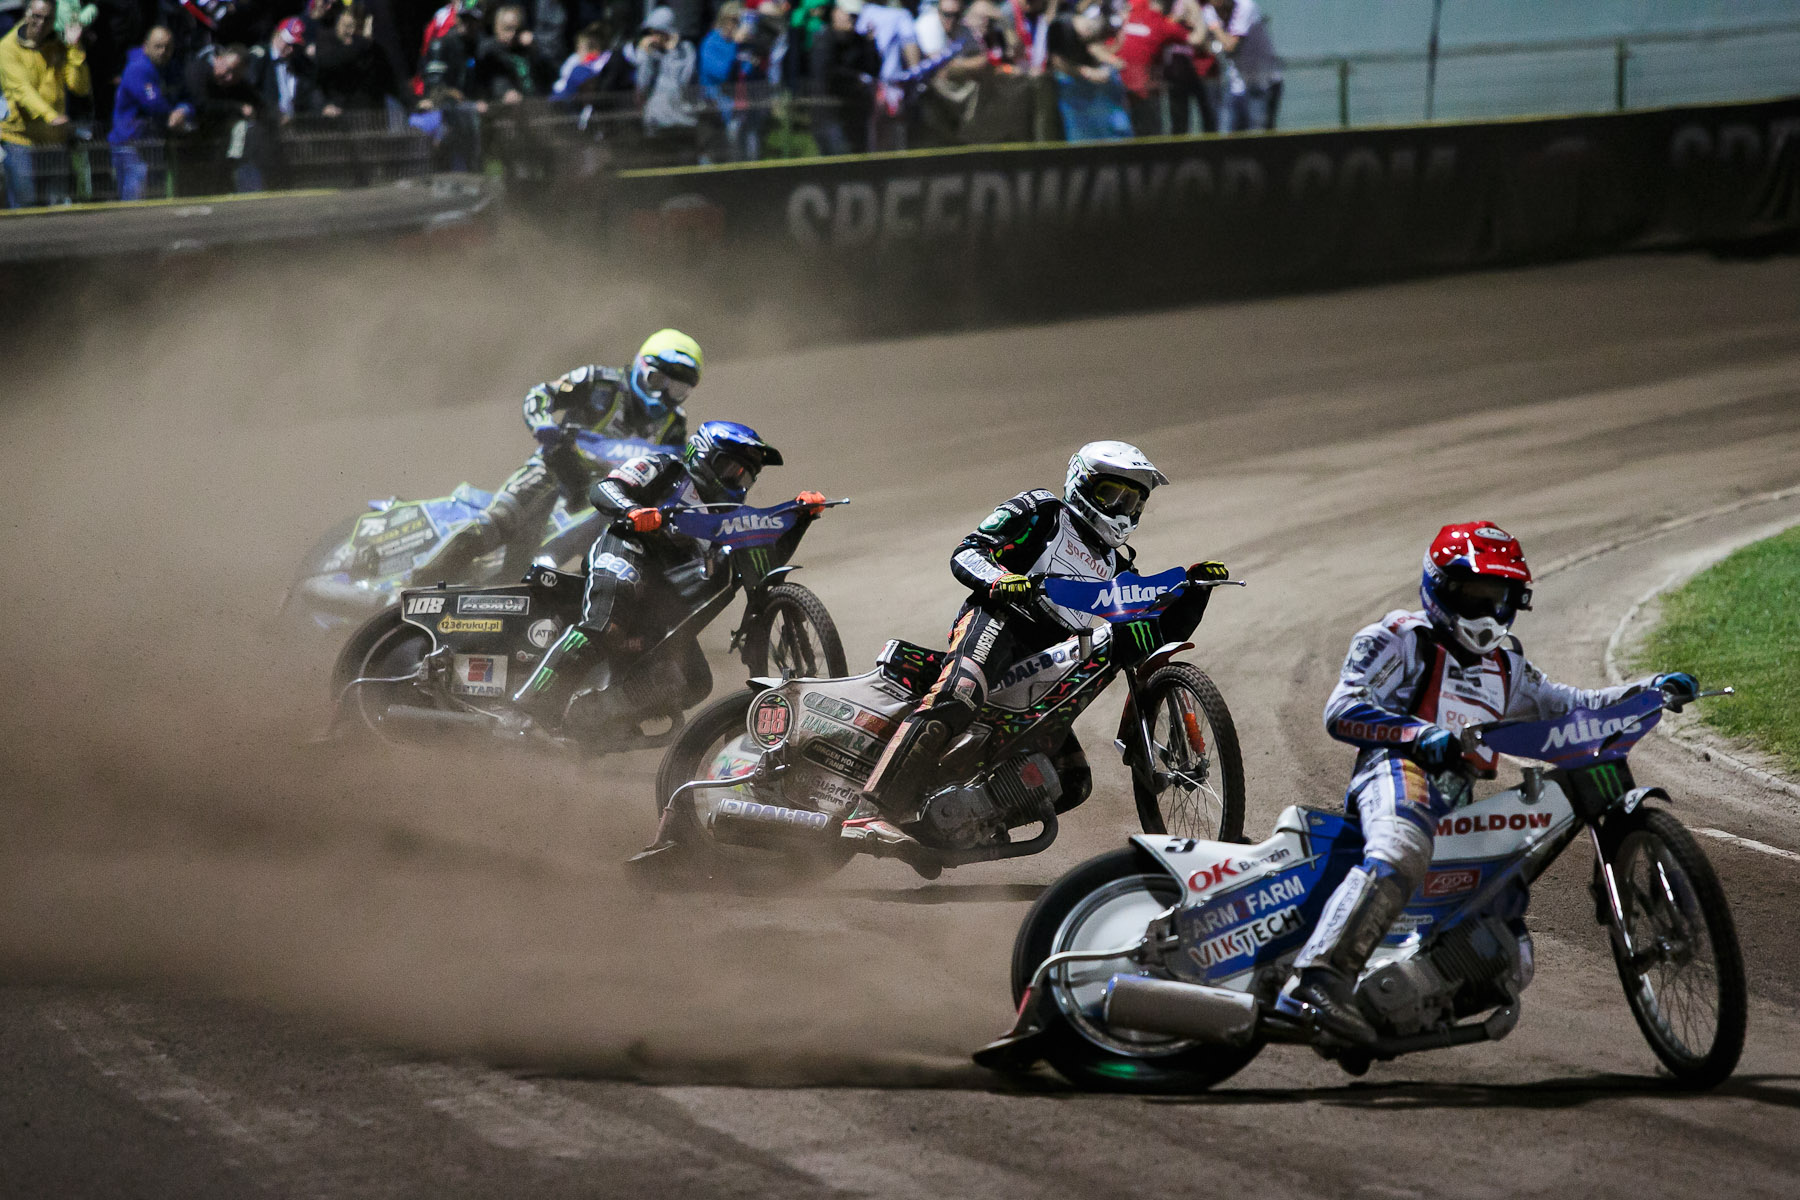 From right: Nicki Pedersen of Denmark, Niels-Kristian Iversen of Denmark, Tai Woffinden of Great Britain and Troy Batchelor of Australia compete in the semi final race of the Mitas Slovenian FIM Speedway Grand Prix at Matija Gubec Stadium in Krsko, Slovenia, Sep. 12, 2015.